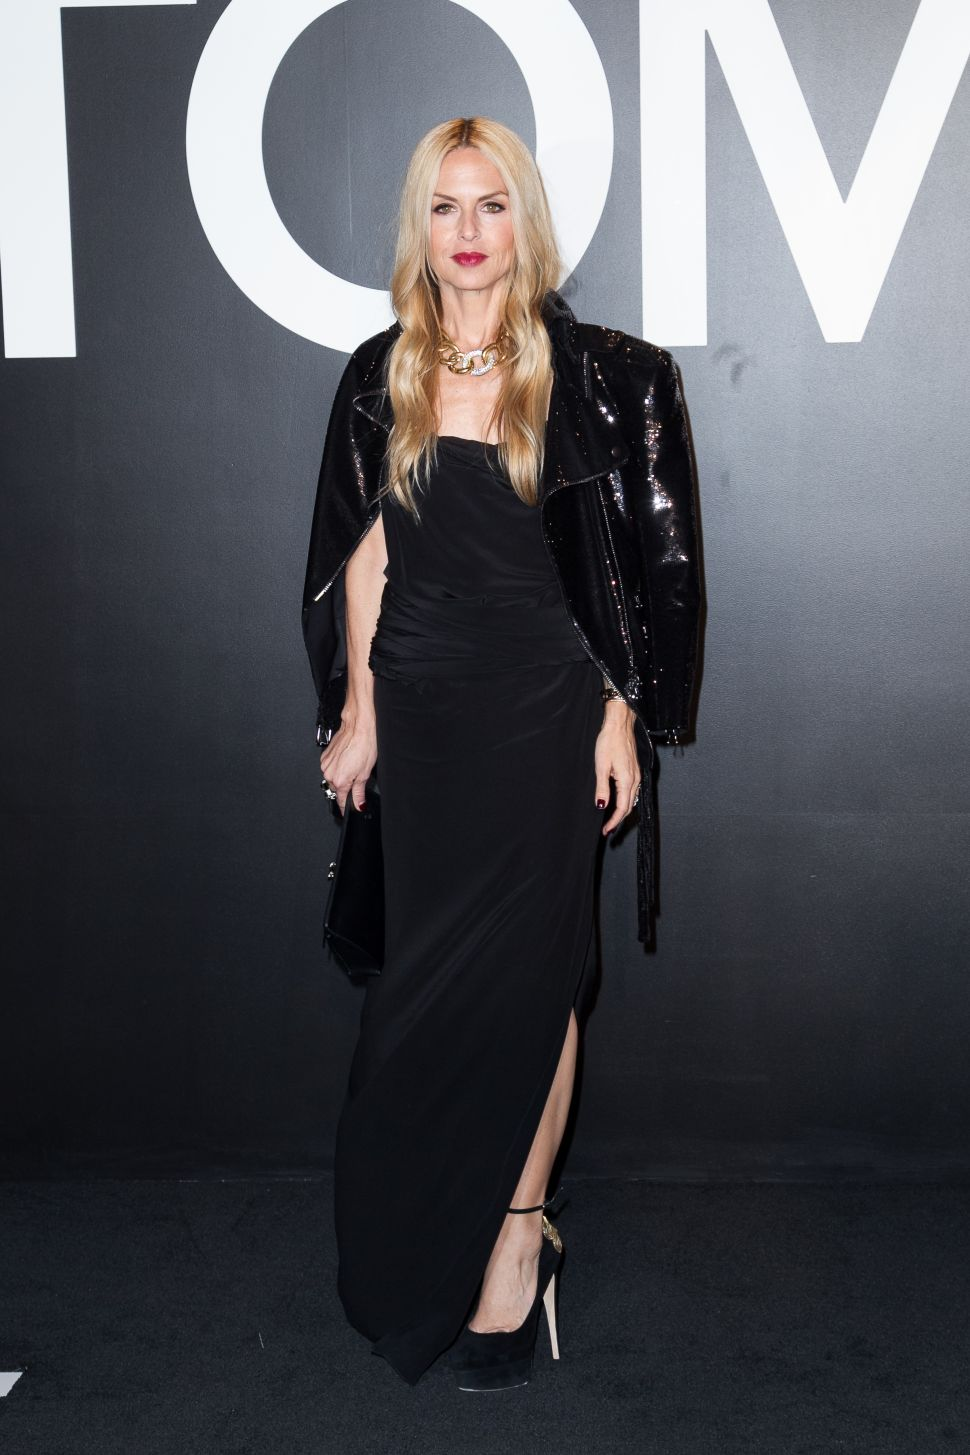 Rachel Zoe Books a New Show, Kendall and Kylie for Balmain, and More News to Know